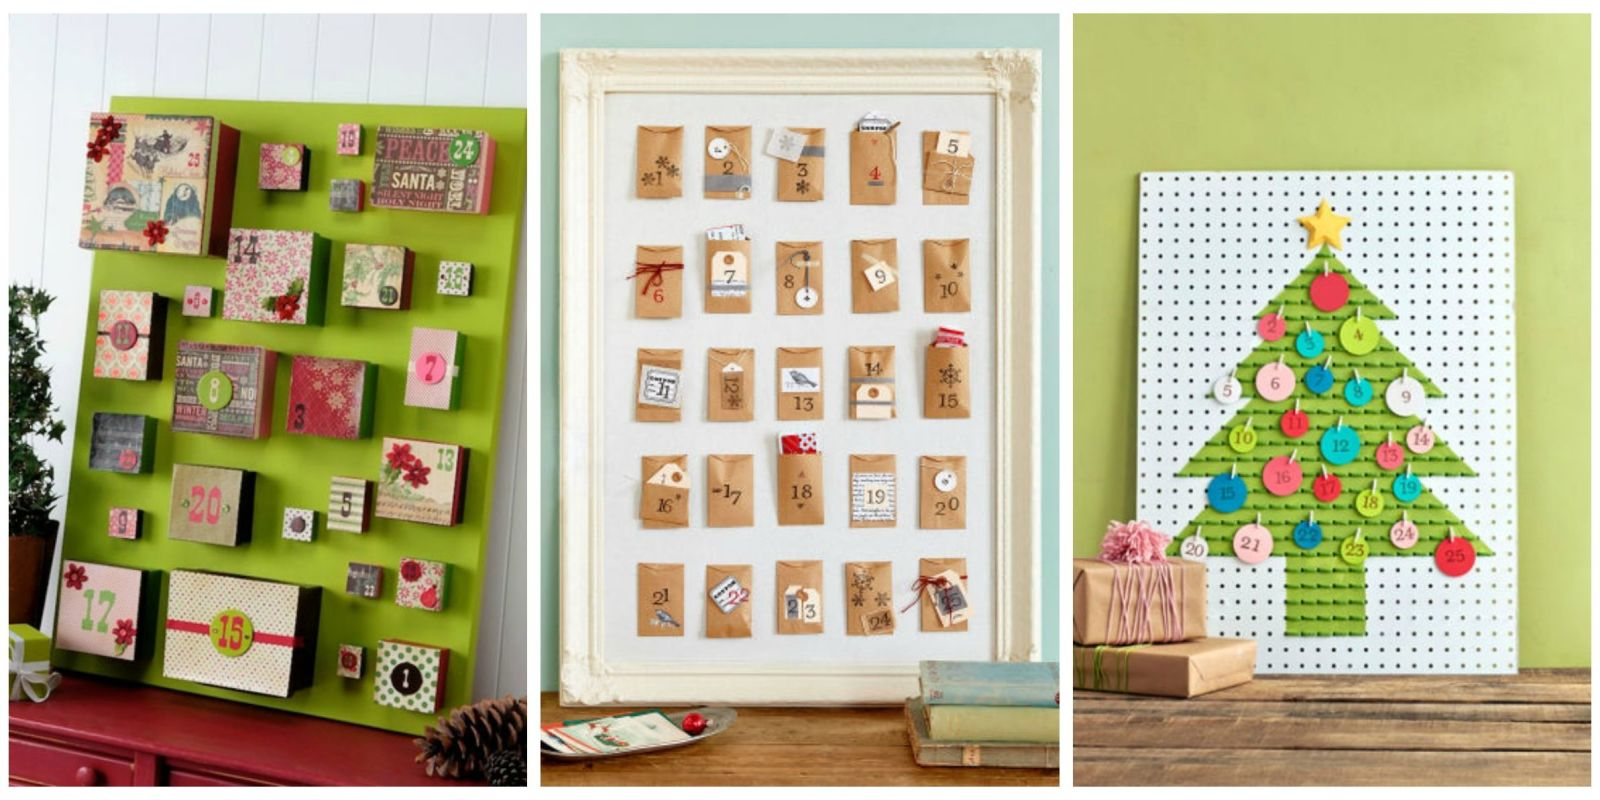 Homemade Calendar Ideas : Diy advent calendar ideas homemade christmas